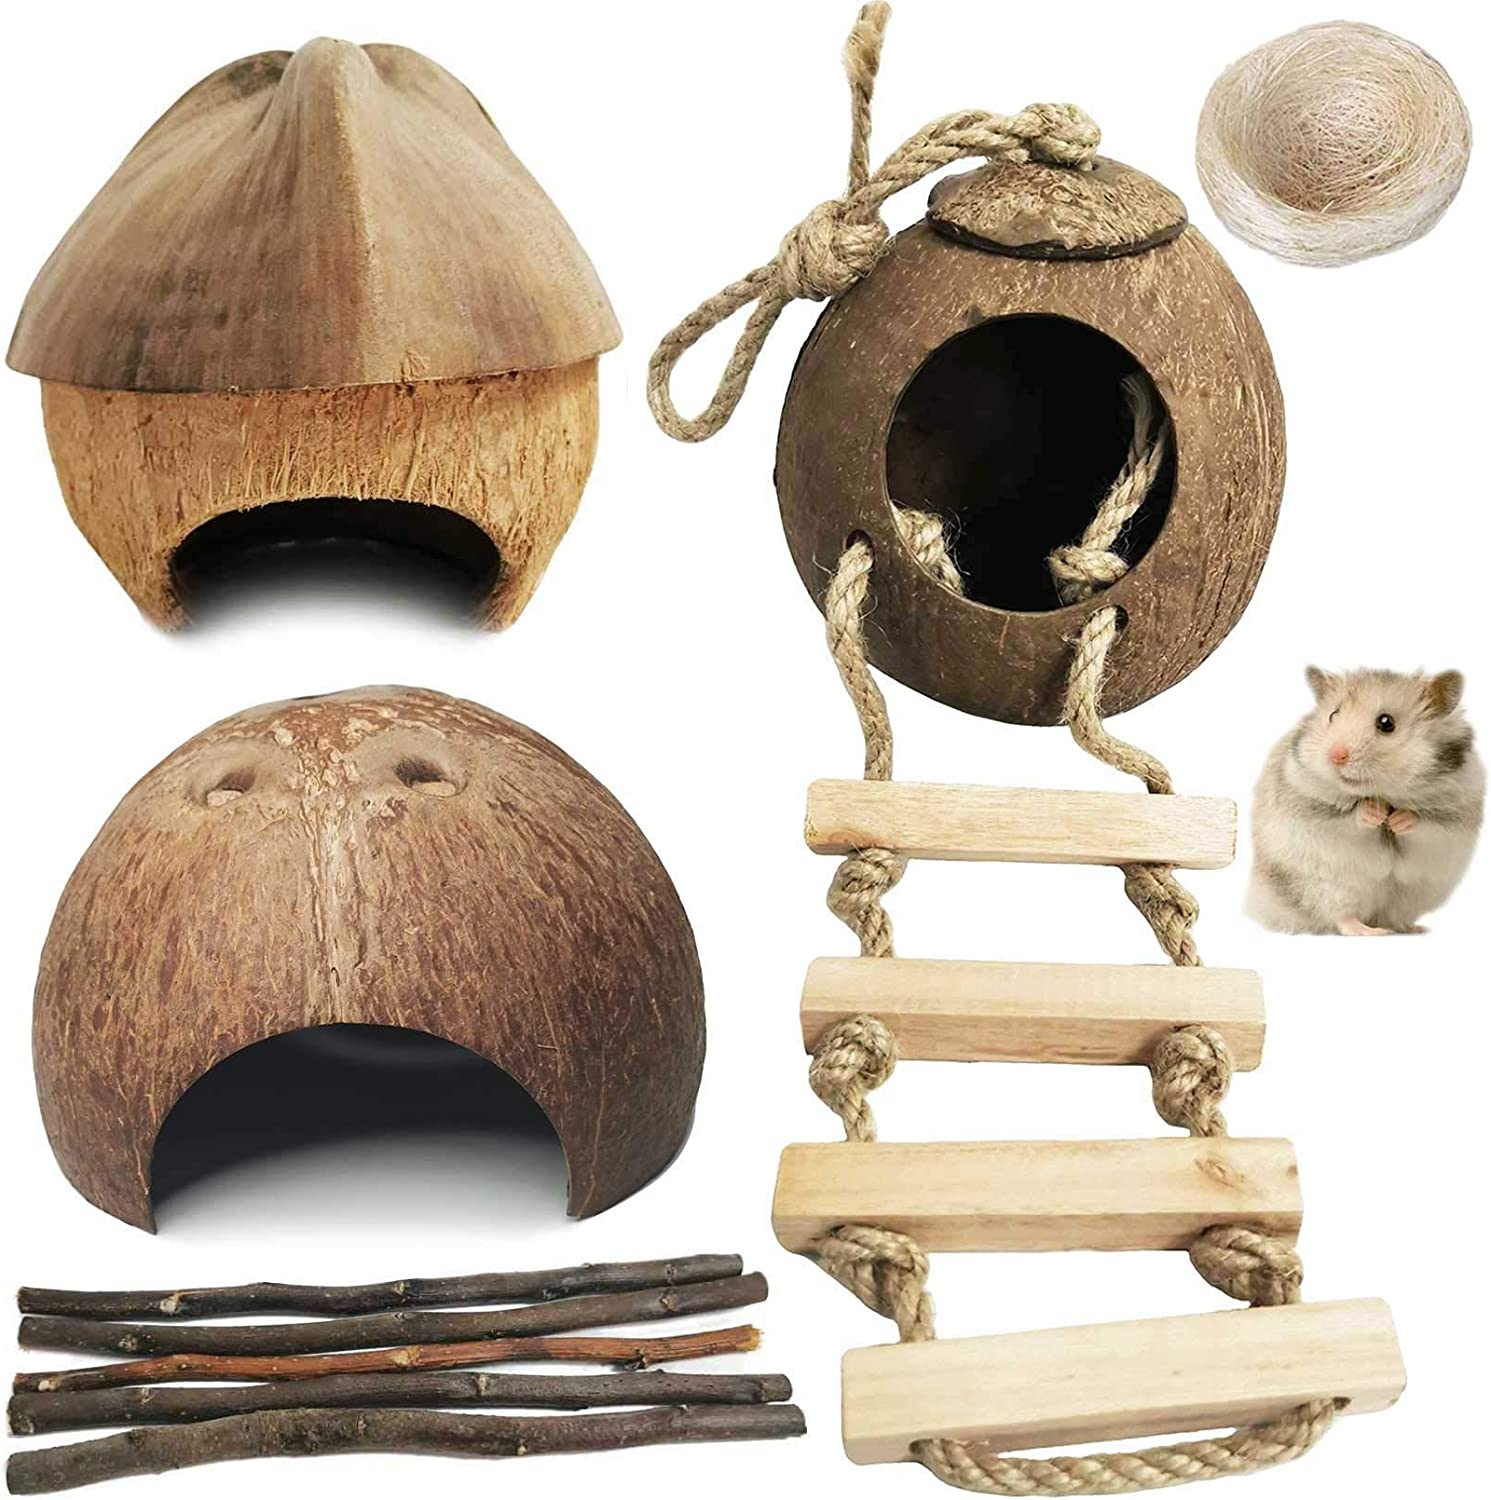 kathson Natural Coconut Hut Hamster Hiding House Pet Cave Small Animal Cage Habitat Decor Hanging Guinea Pig Toys with Ladder for Gerbils Rats Mice Playing Breeding 9PCS